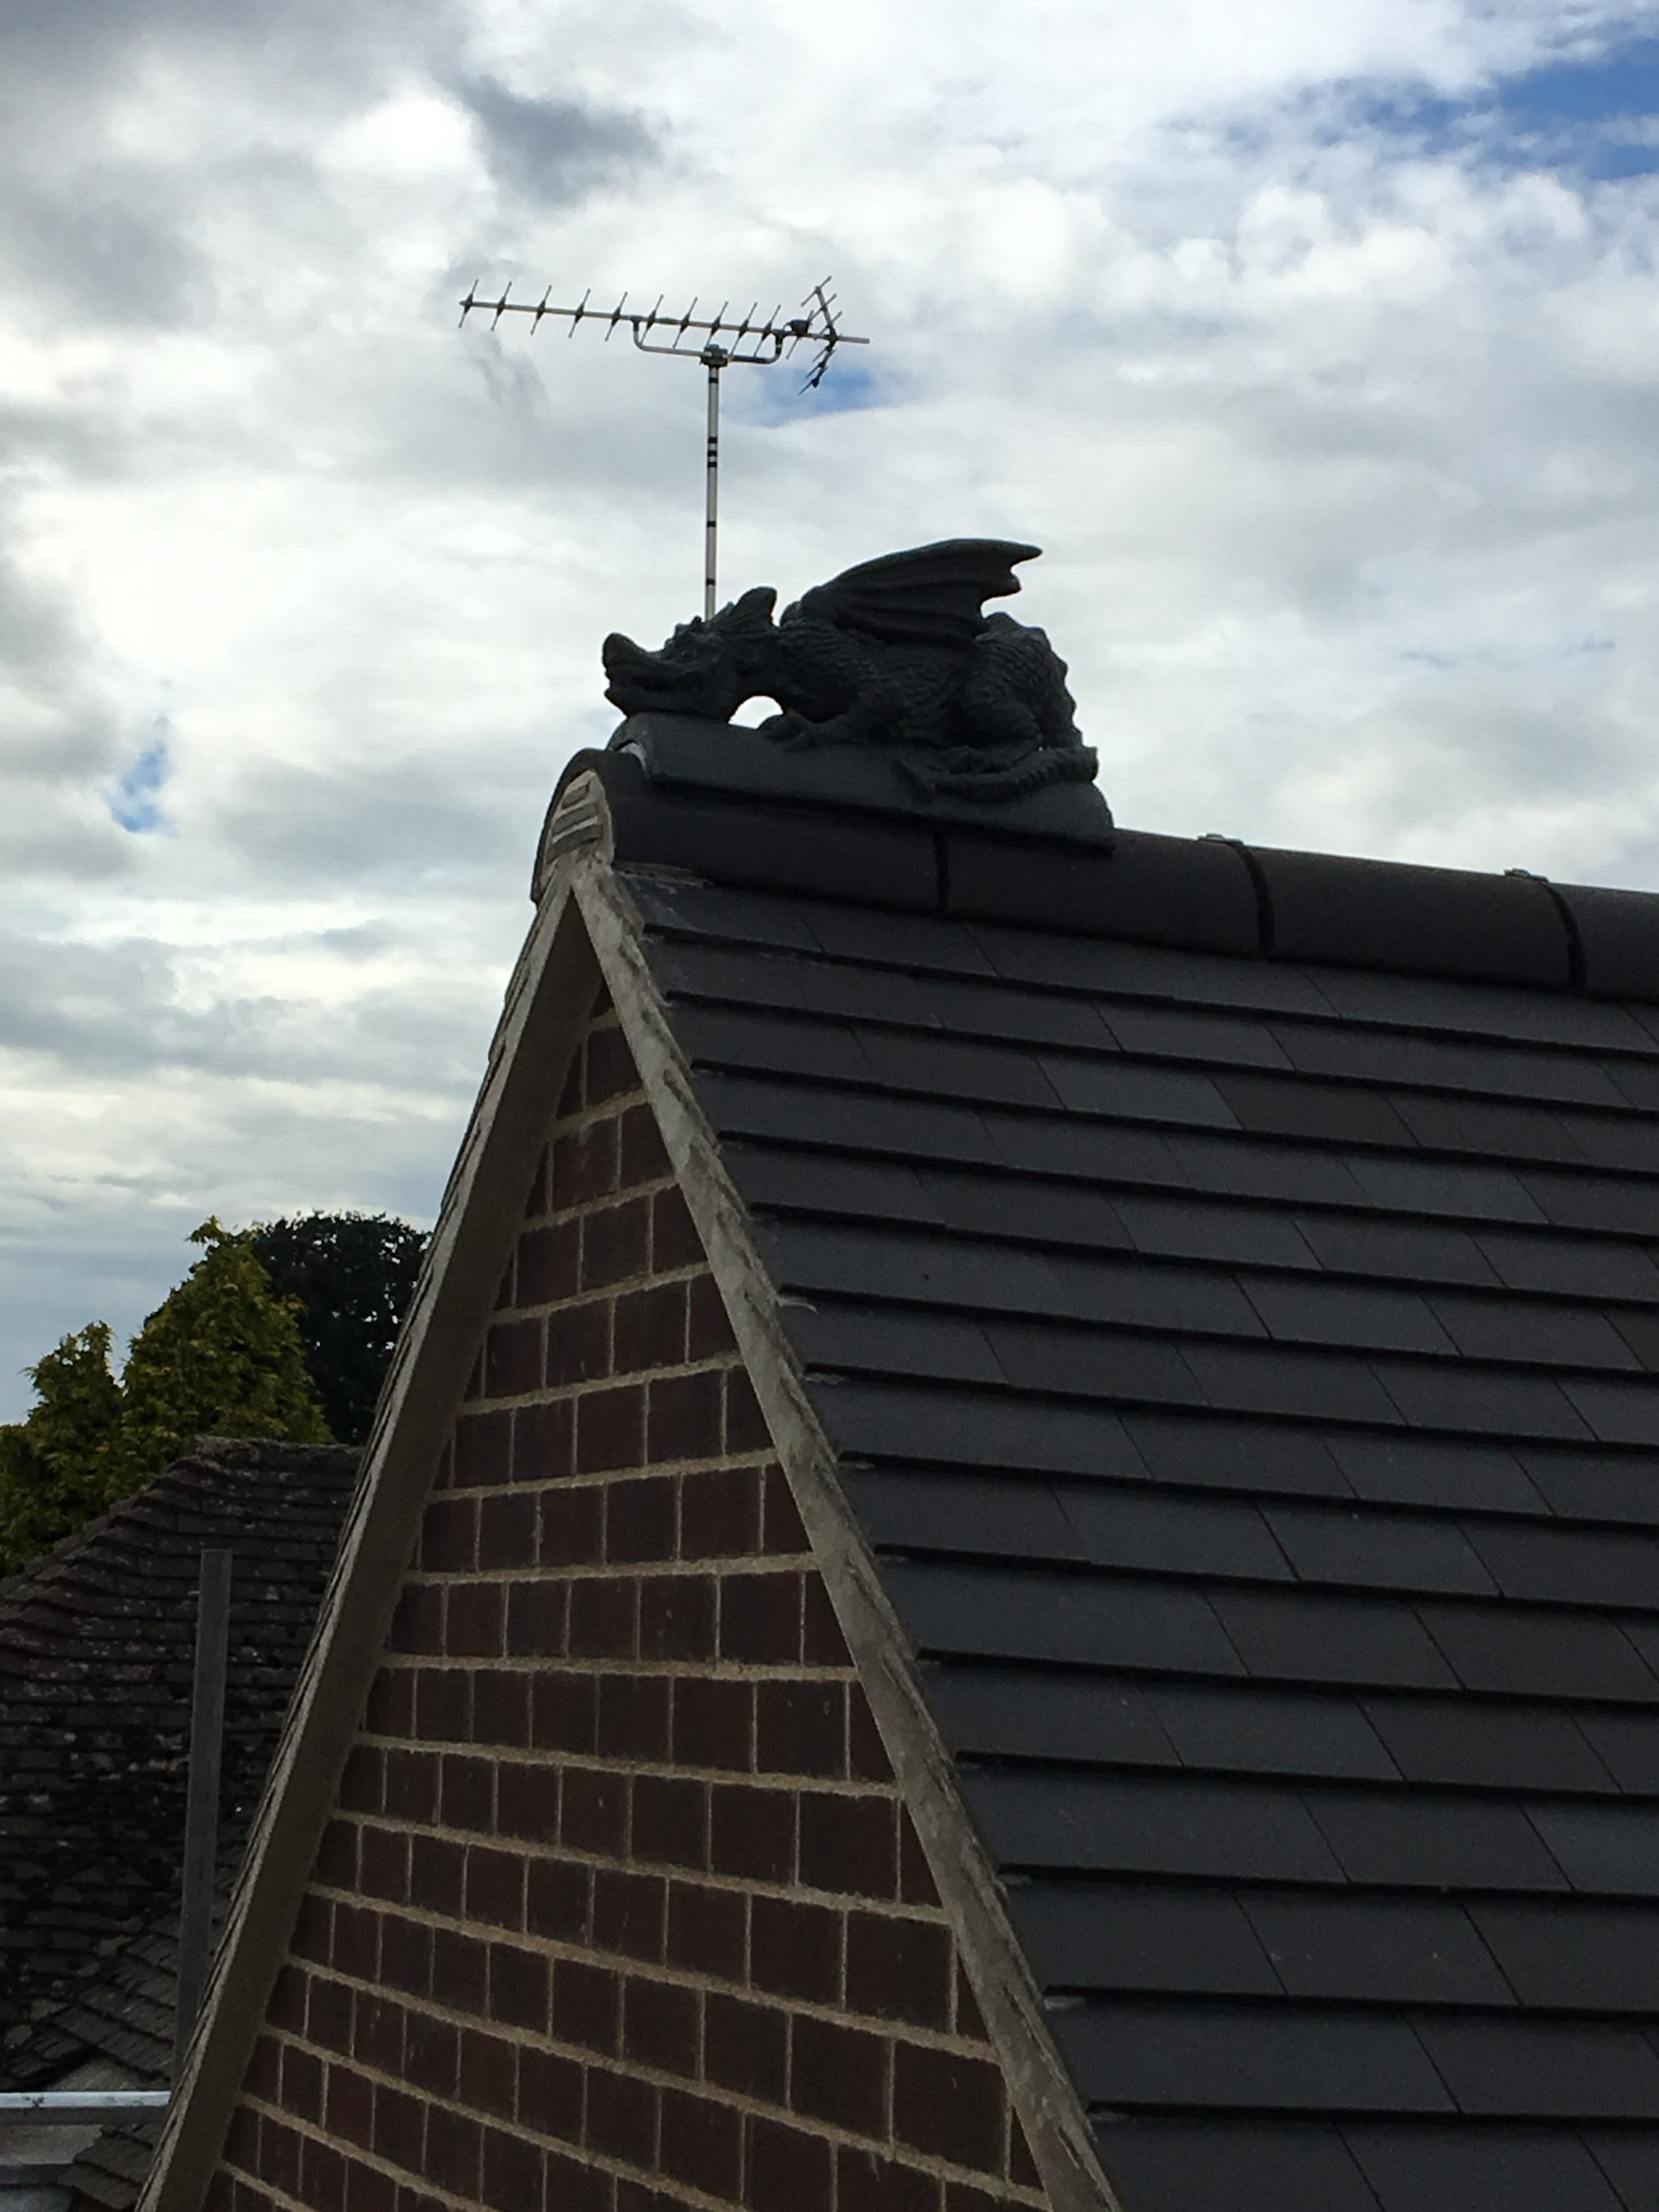 Staffordshire blue segmental ridge dragon install over ridge tiles